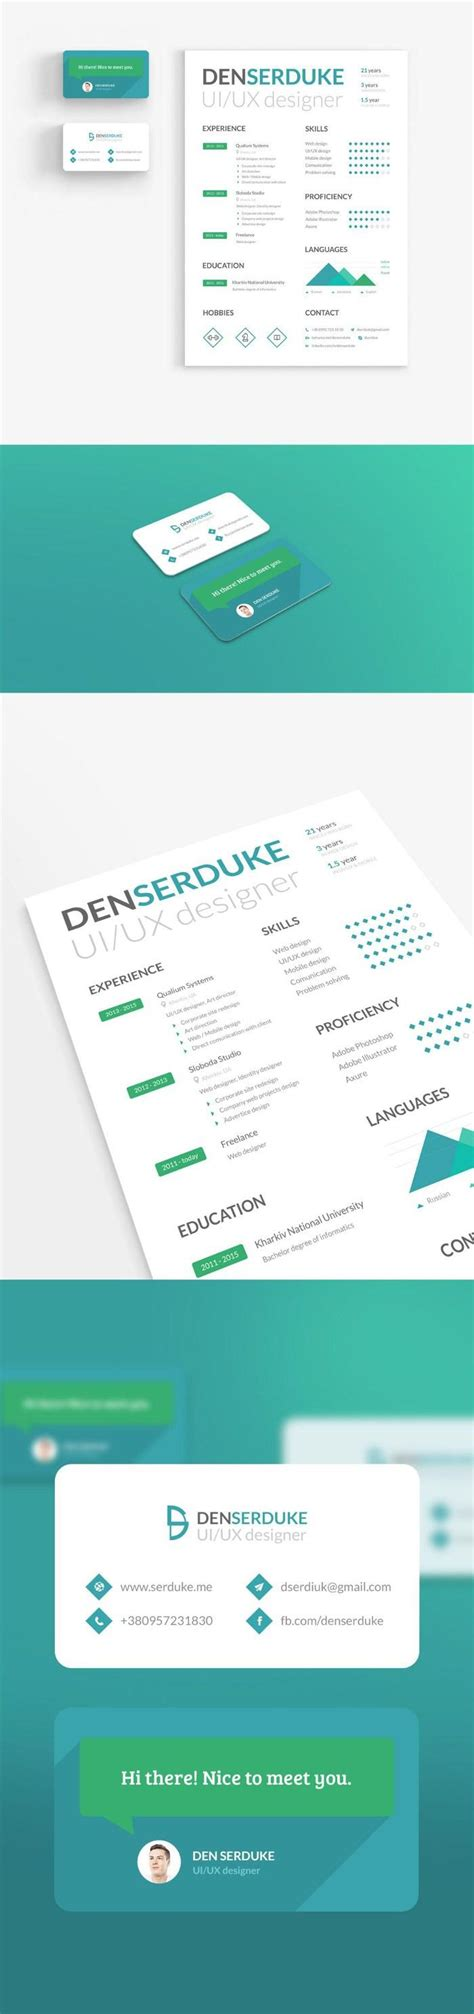 unique images of business cards templates free for word